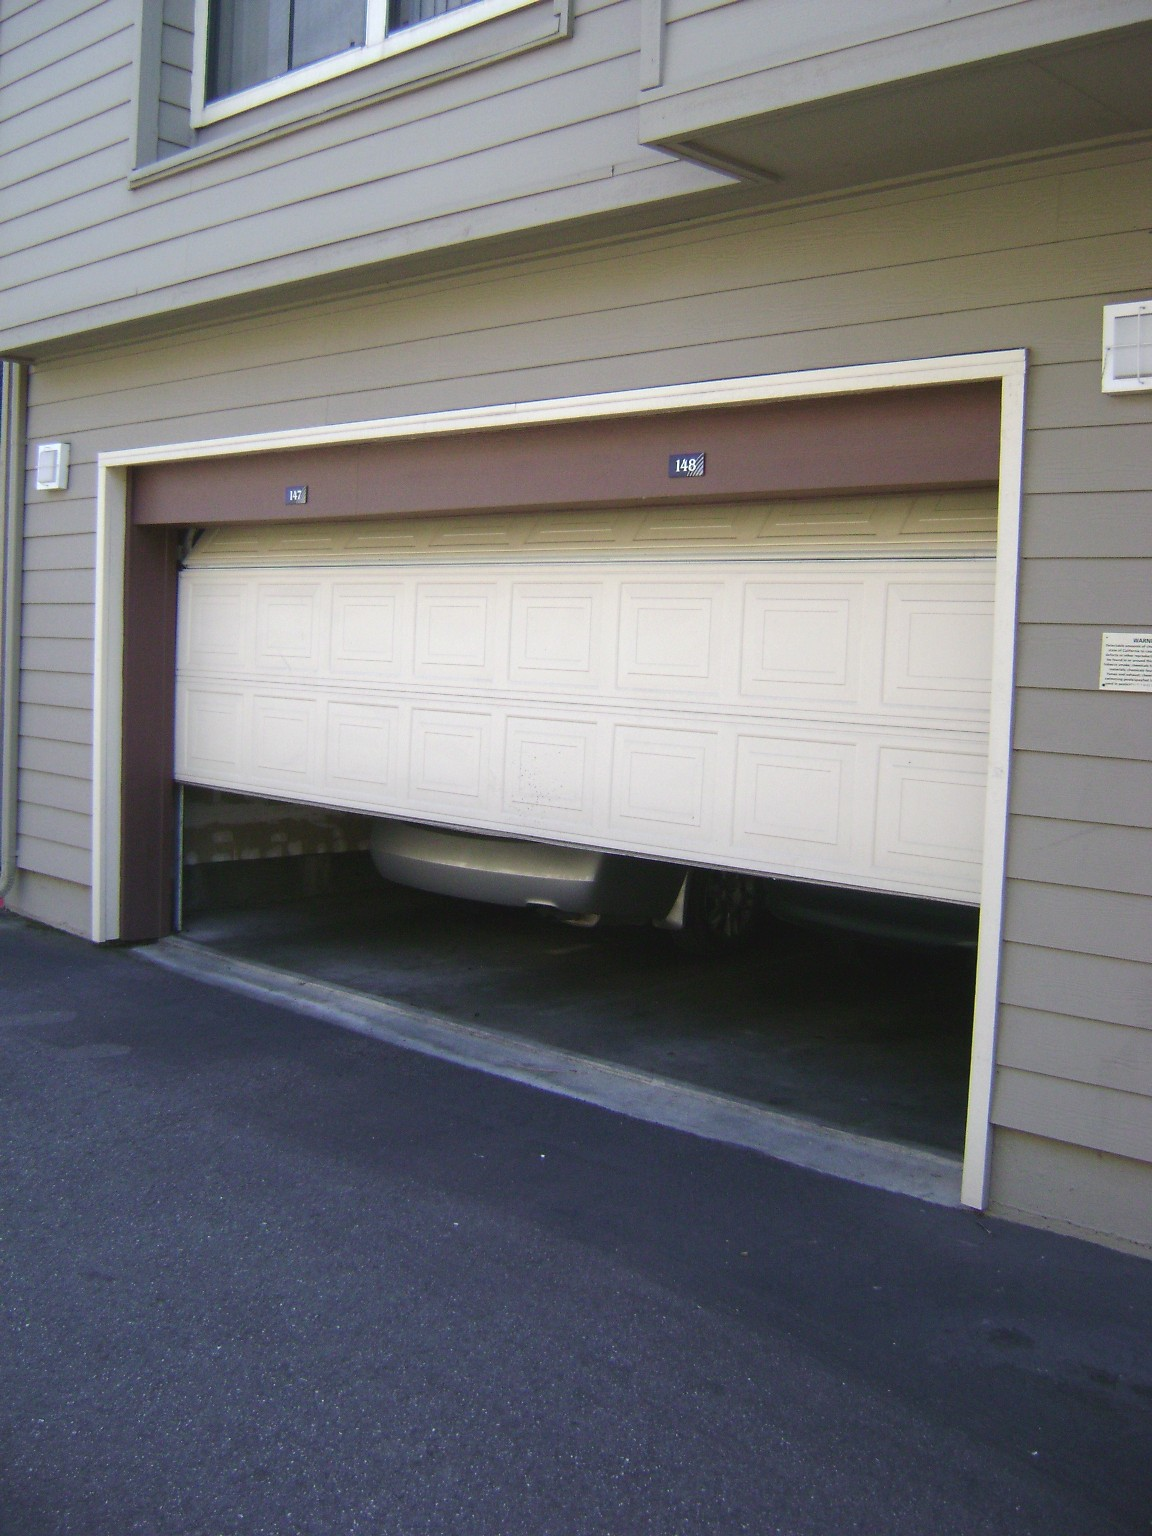 1536 #6A614A File:Garage Door Sliding Up.jpg Wikimedia Commons wallpaper Grarage Doors 38151152